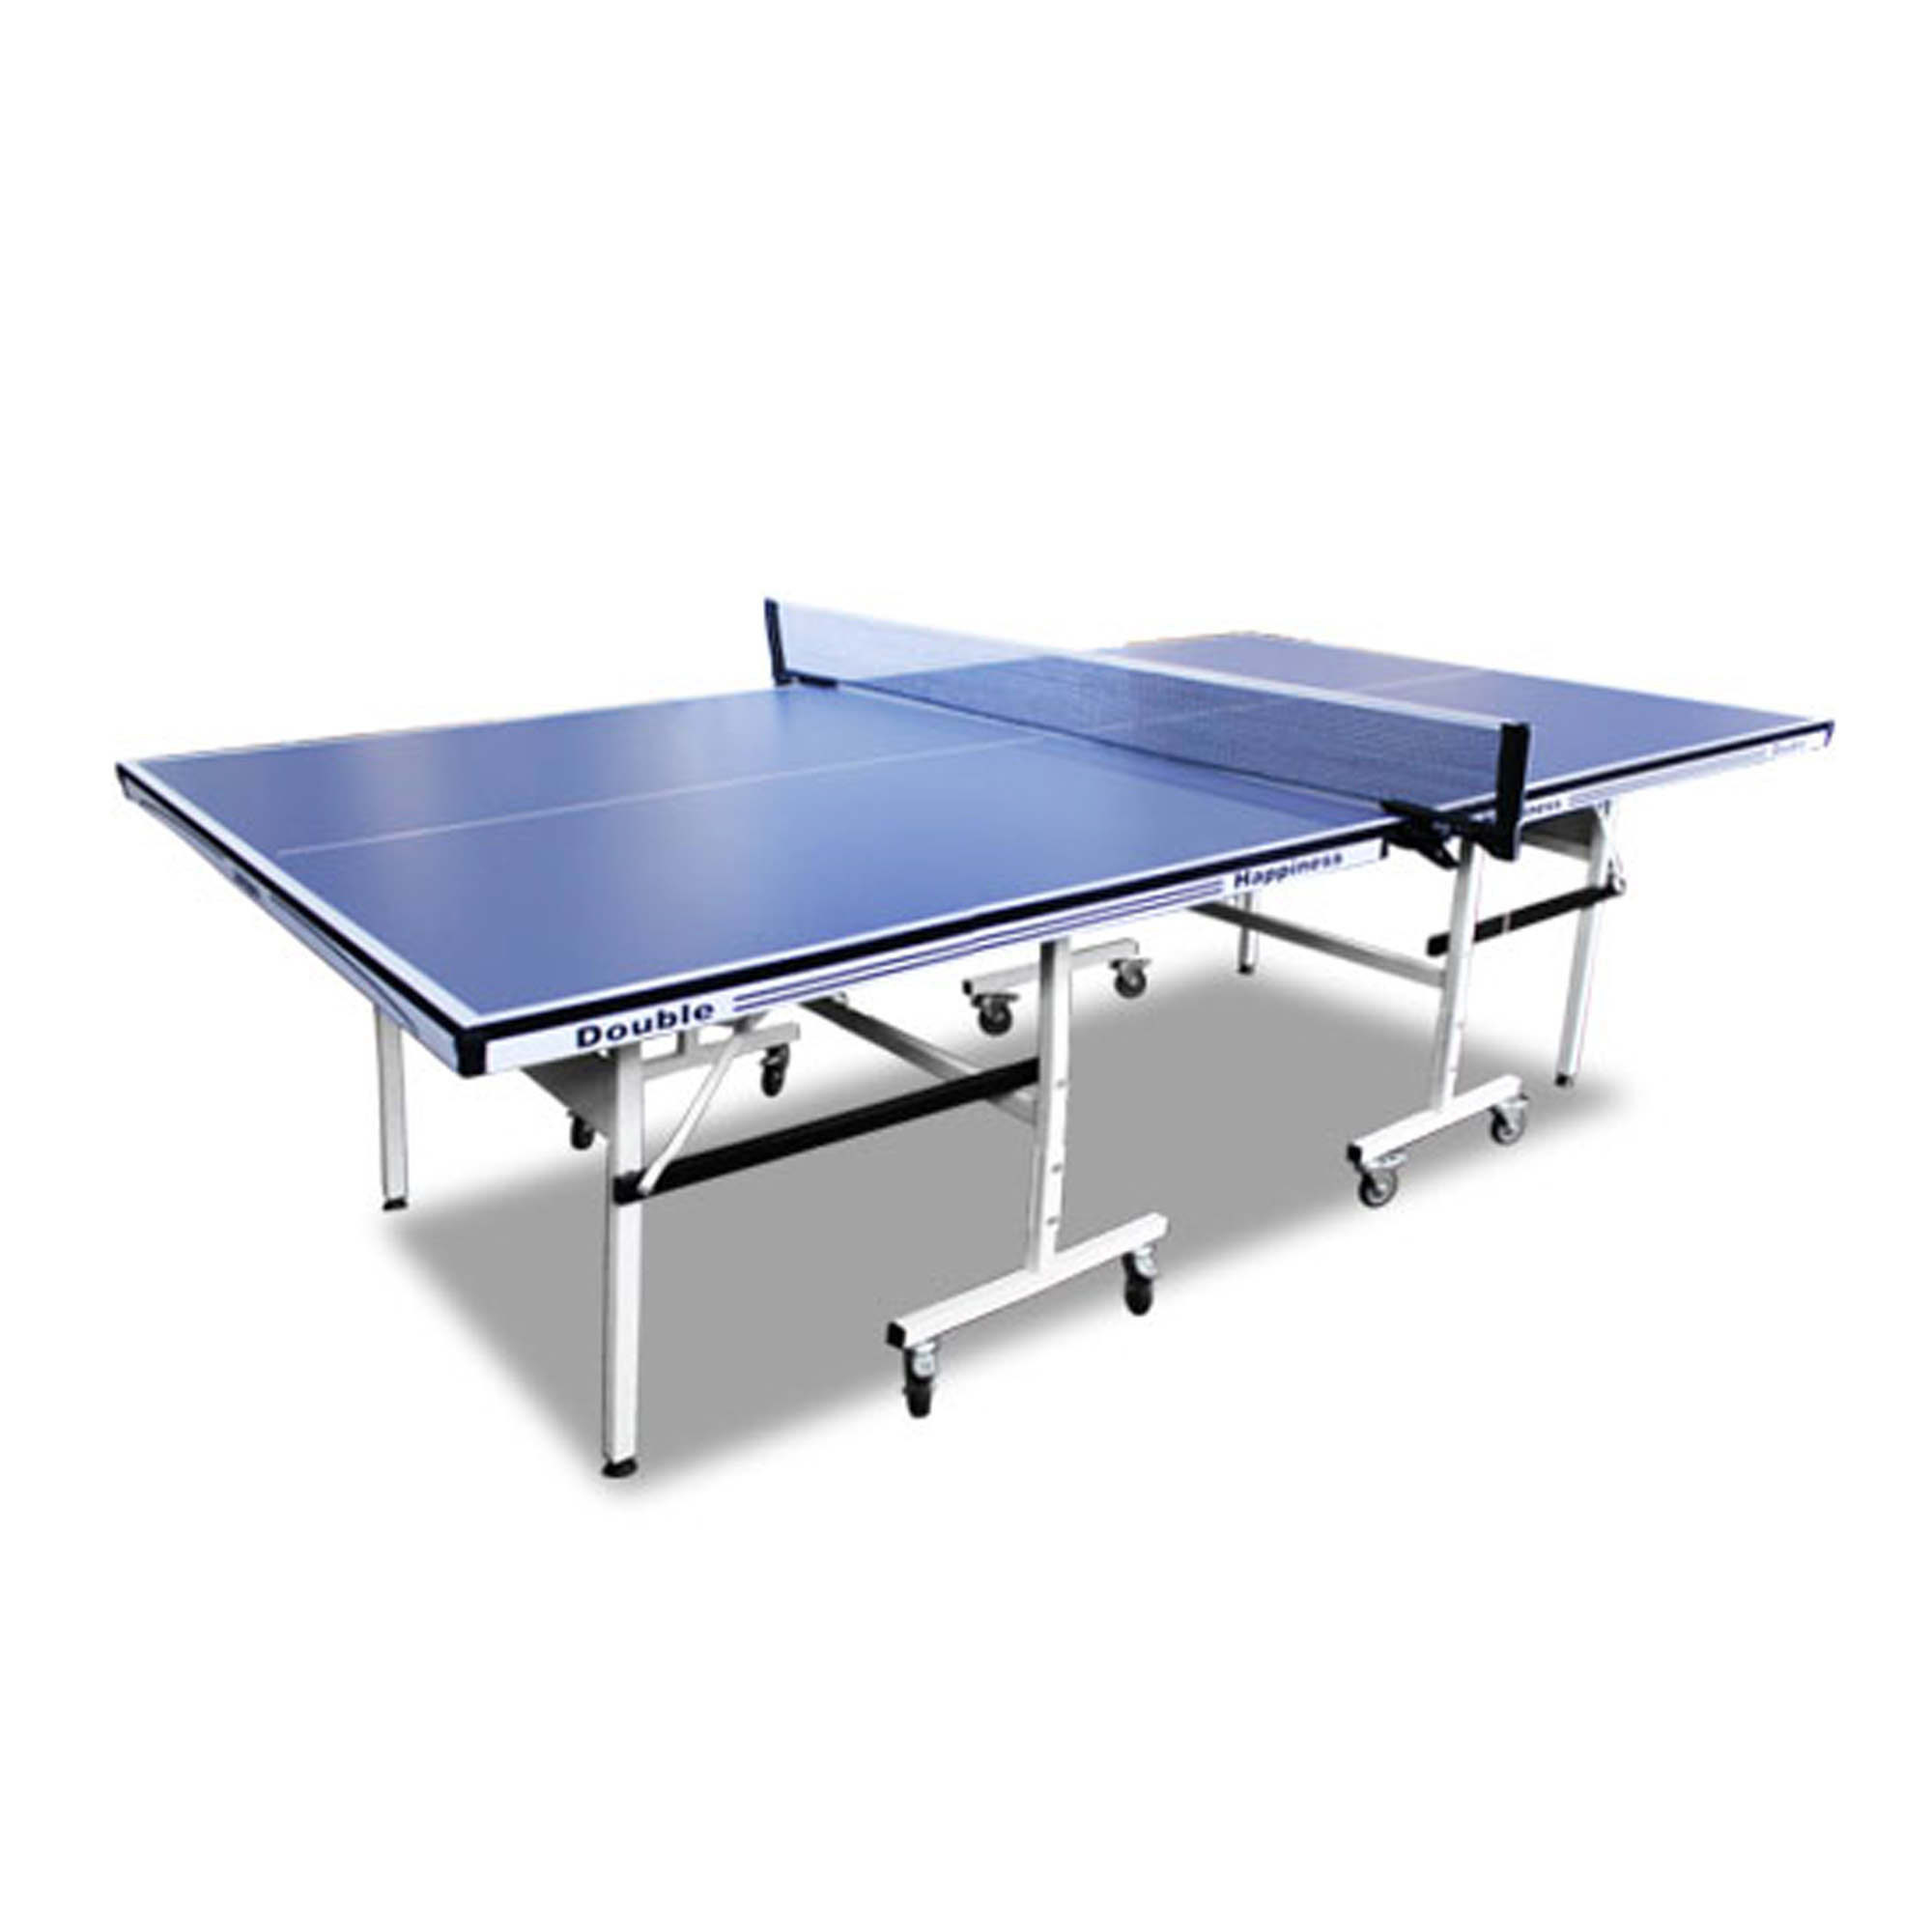 Double Happiness Indoor Advanced 160 Table Tennis Ping Pong Table Blue Top with Free Accessories Package